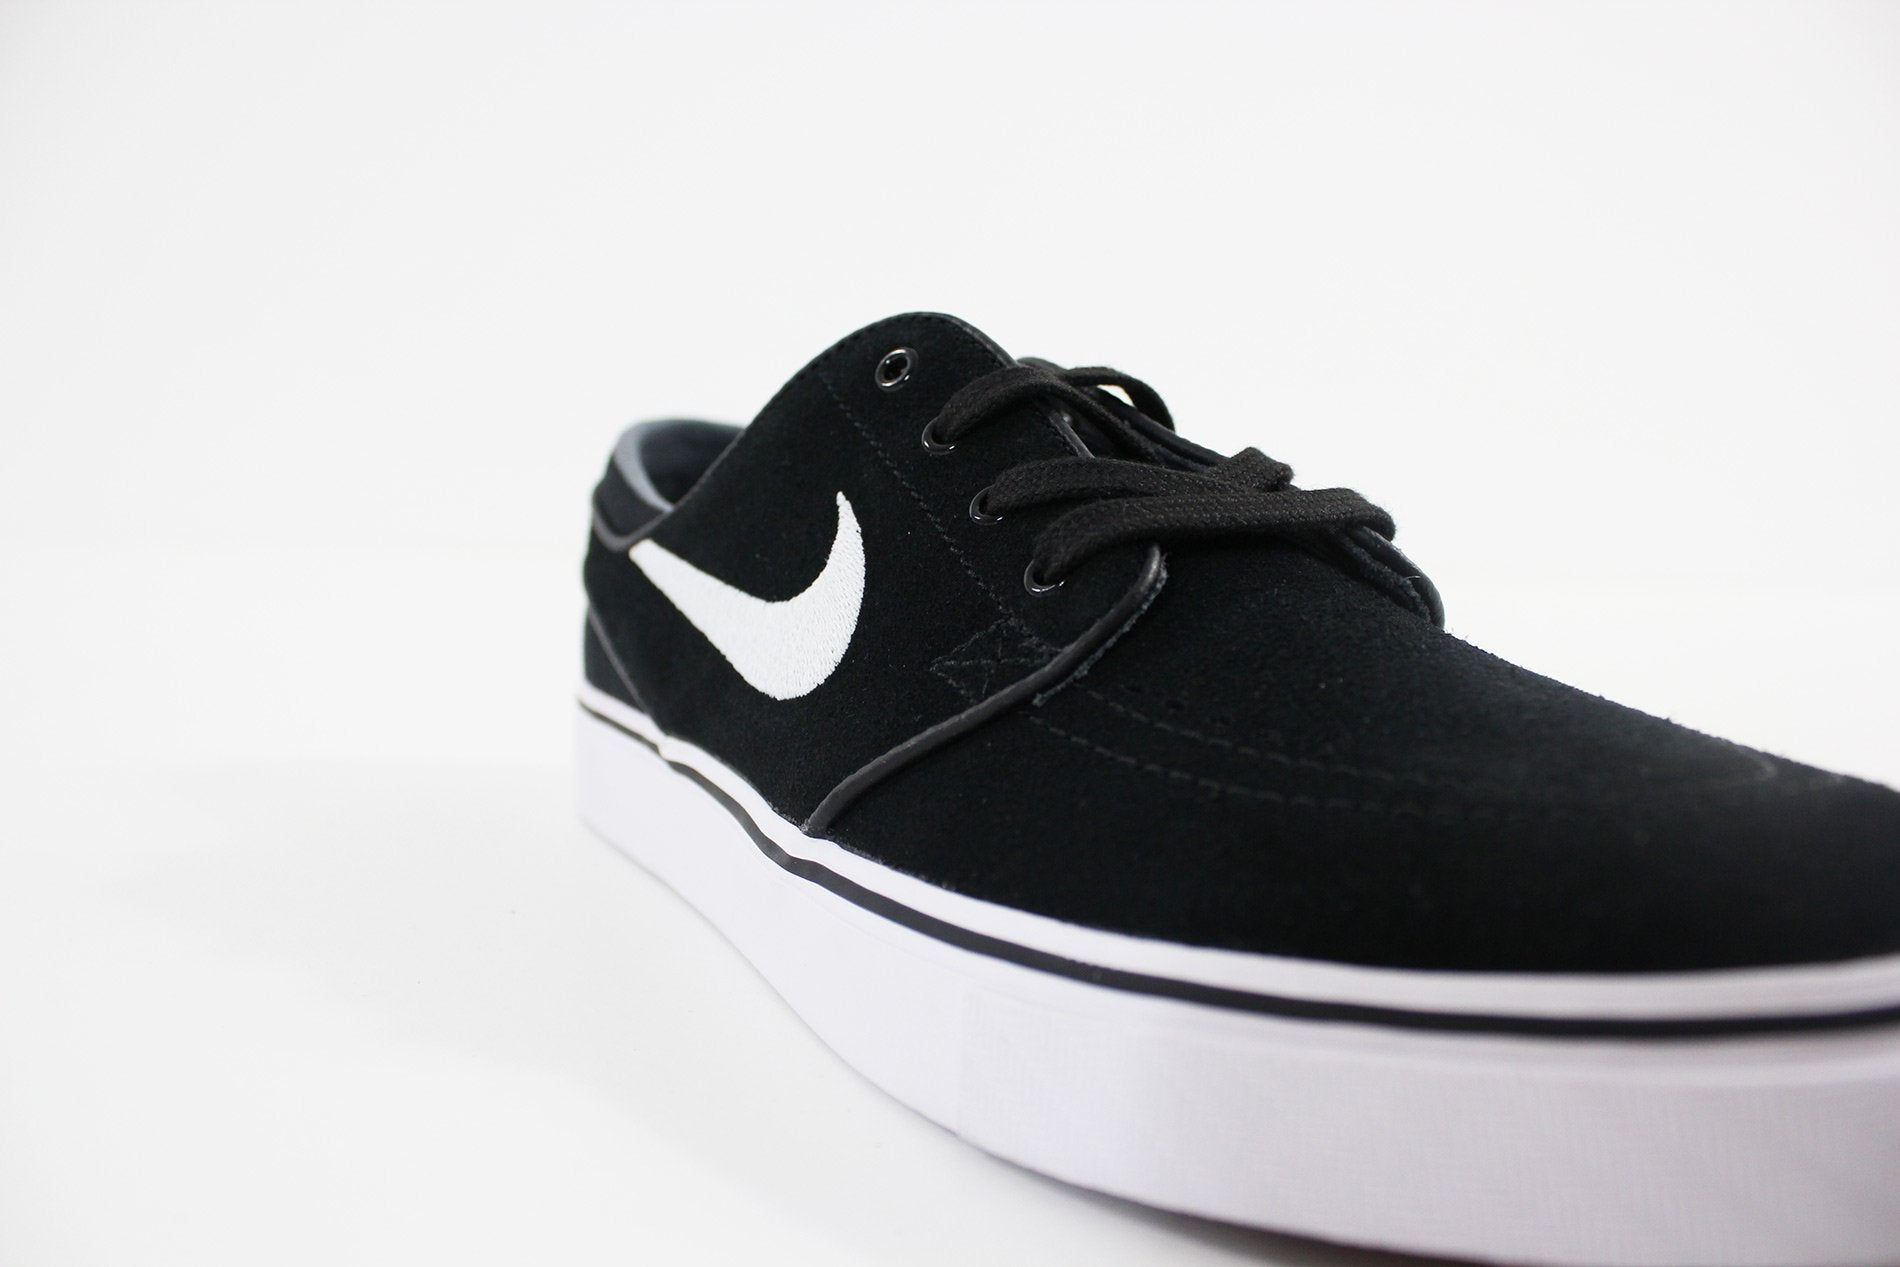 pretty nice 5f0c6 db69c Nike - Men s Nike SB Zoom Stefan Janoski Skateboarding Shoe (BLACK WHITE)  333824-026